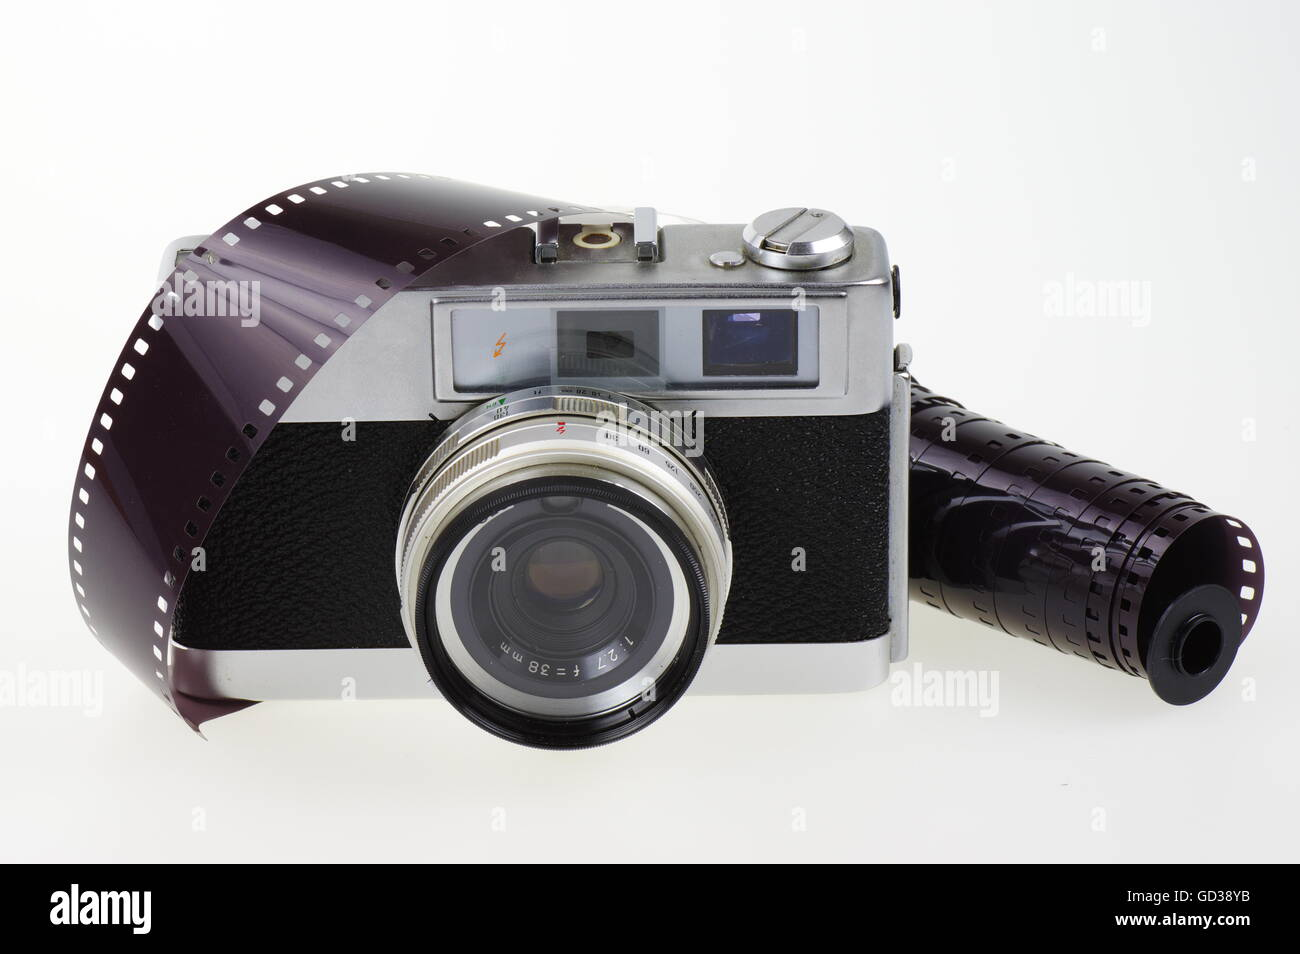 Old rangefinder analog camera system 135 and the photographic film on the white background. Stock Photo